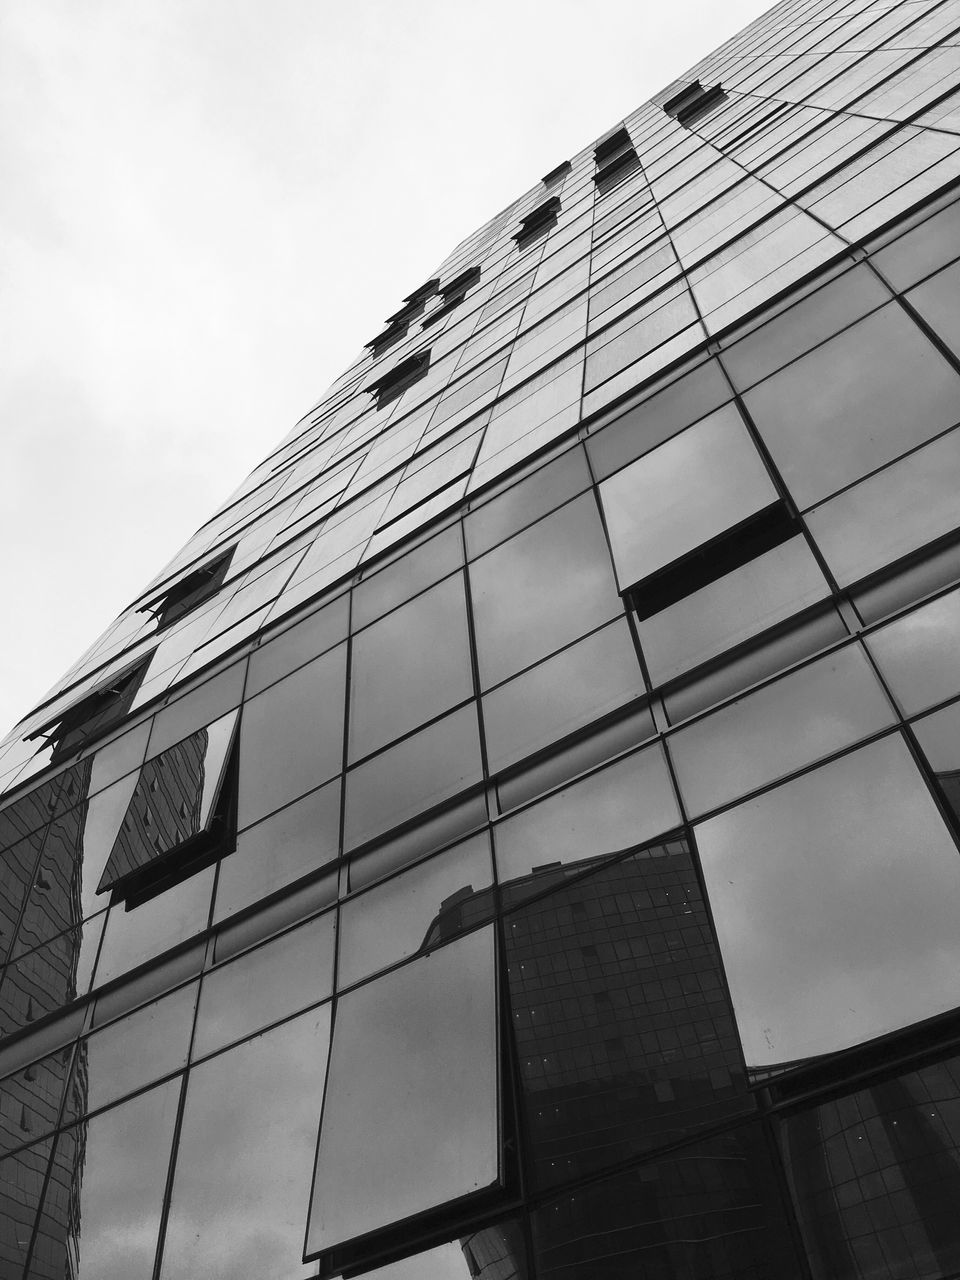 architecture, building exterior, built structure, modern, glass - material, low angle view, building, window, reflection, sky, facade, no people, outdoors, city, skyscraper, day